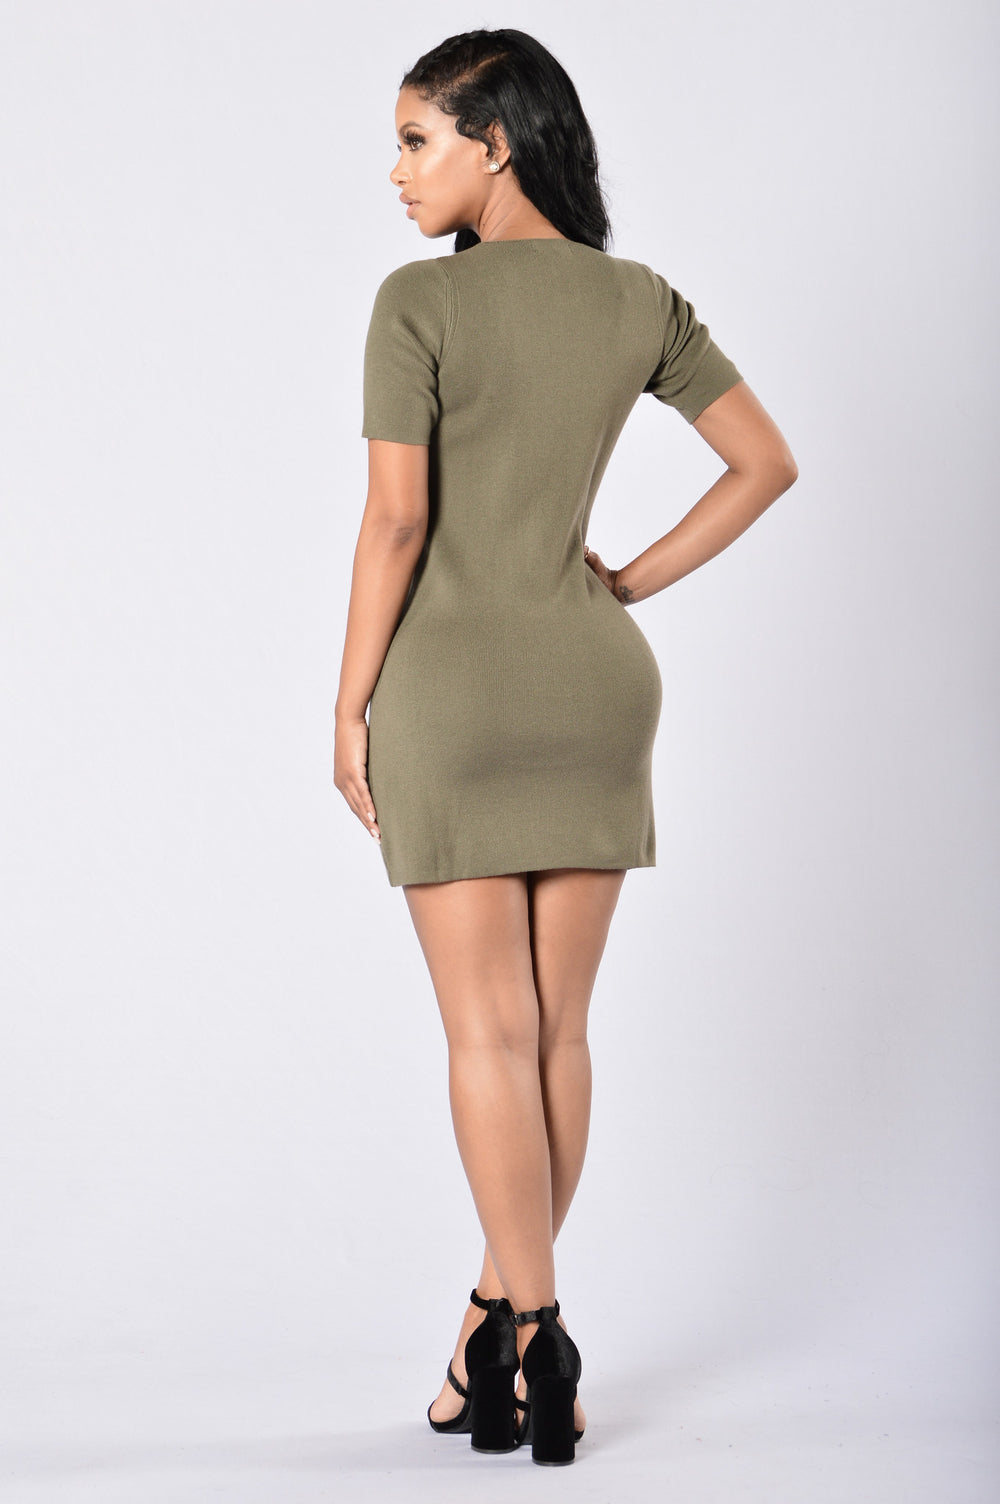 Too Often Dress - Olive